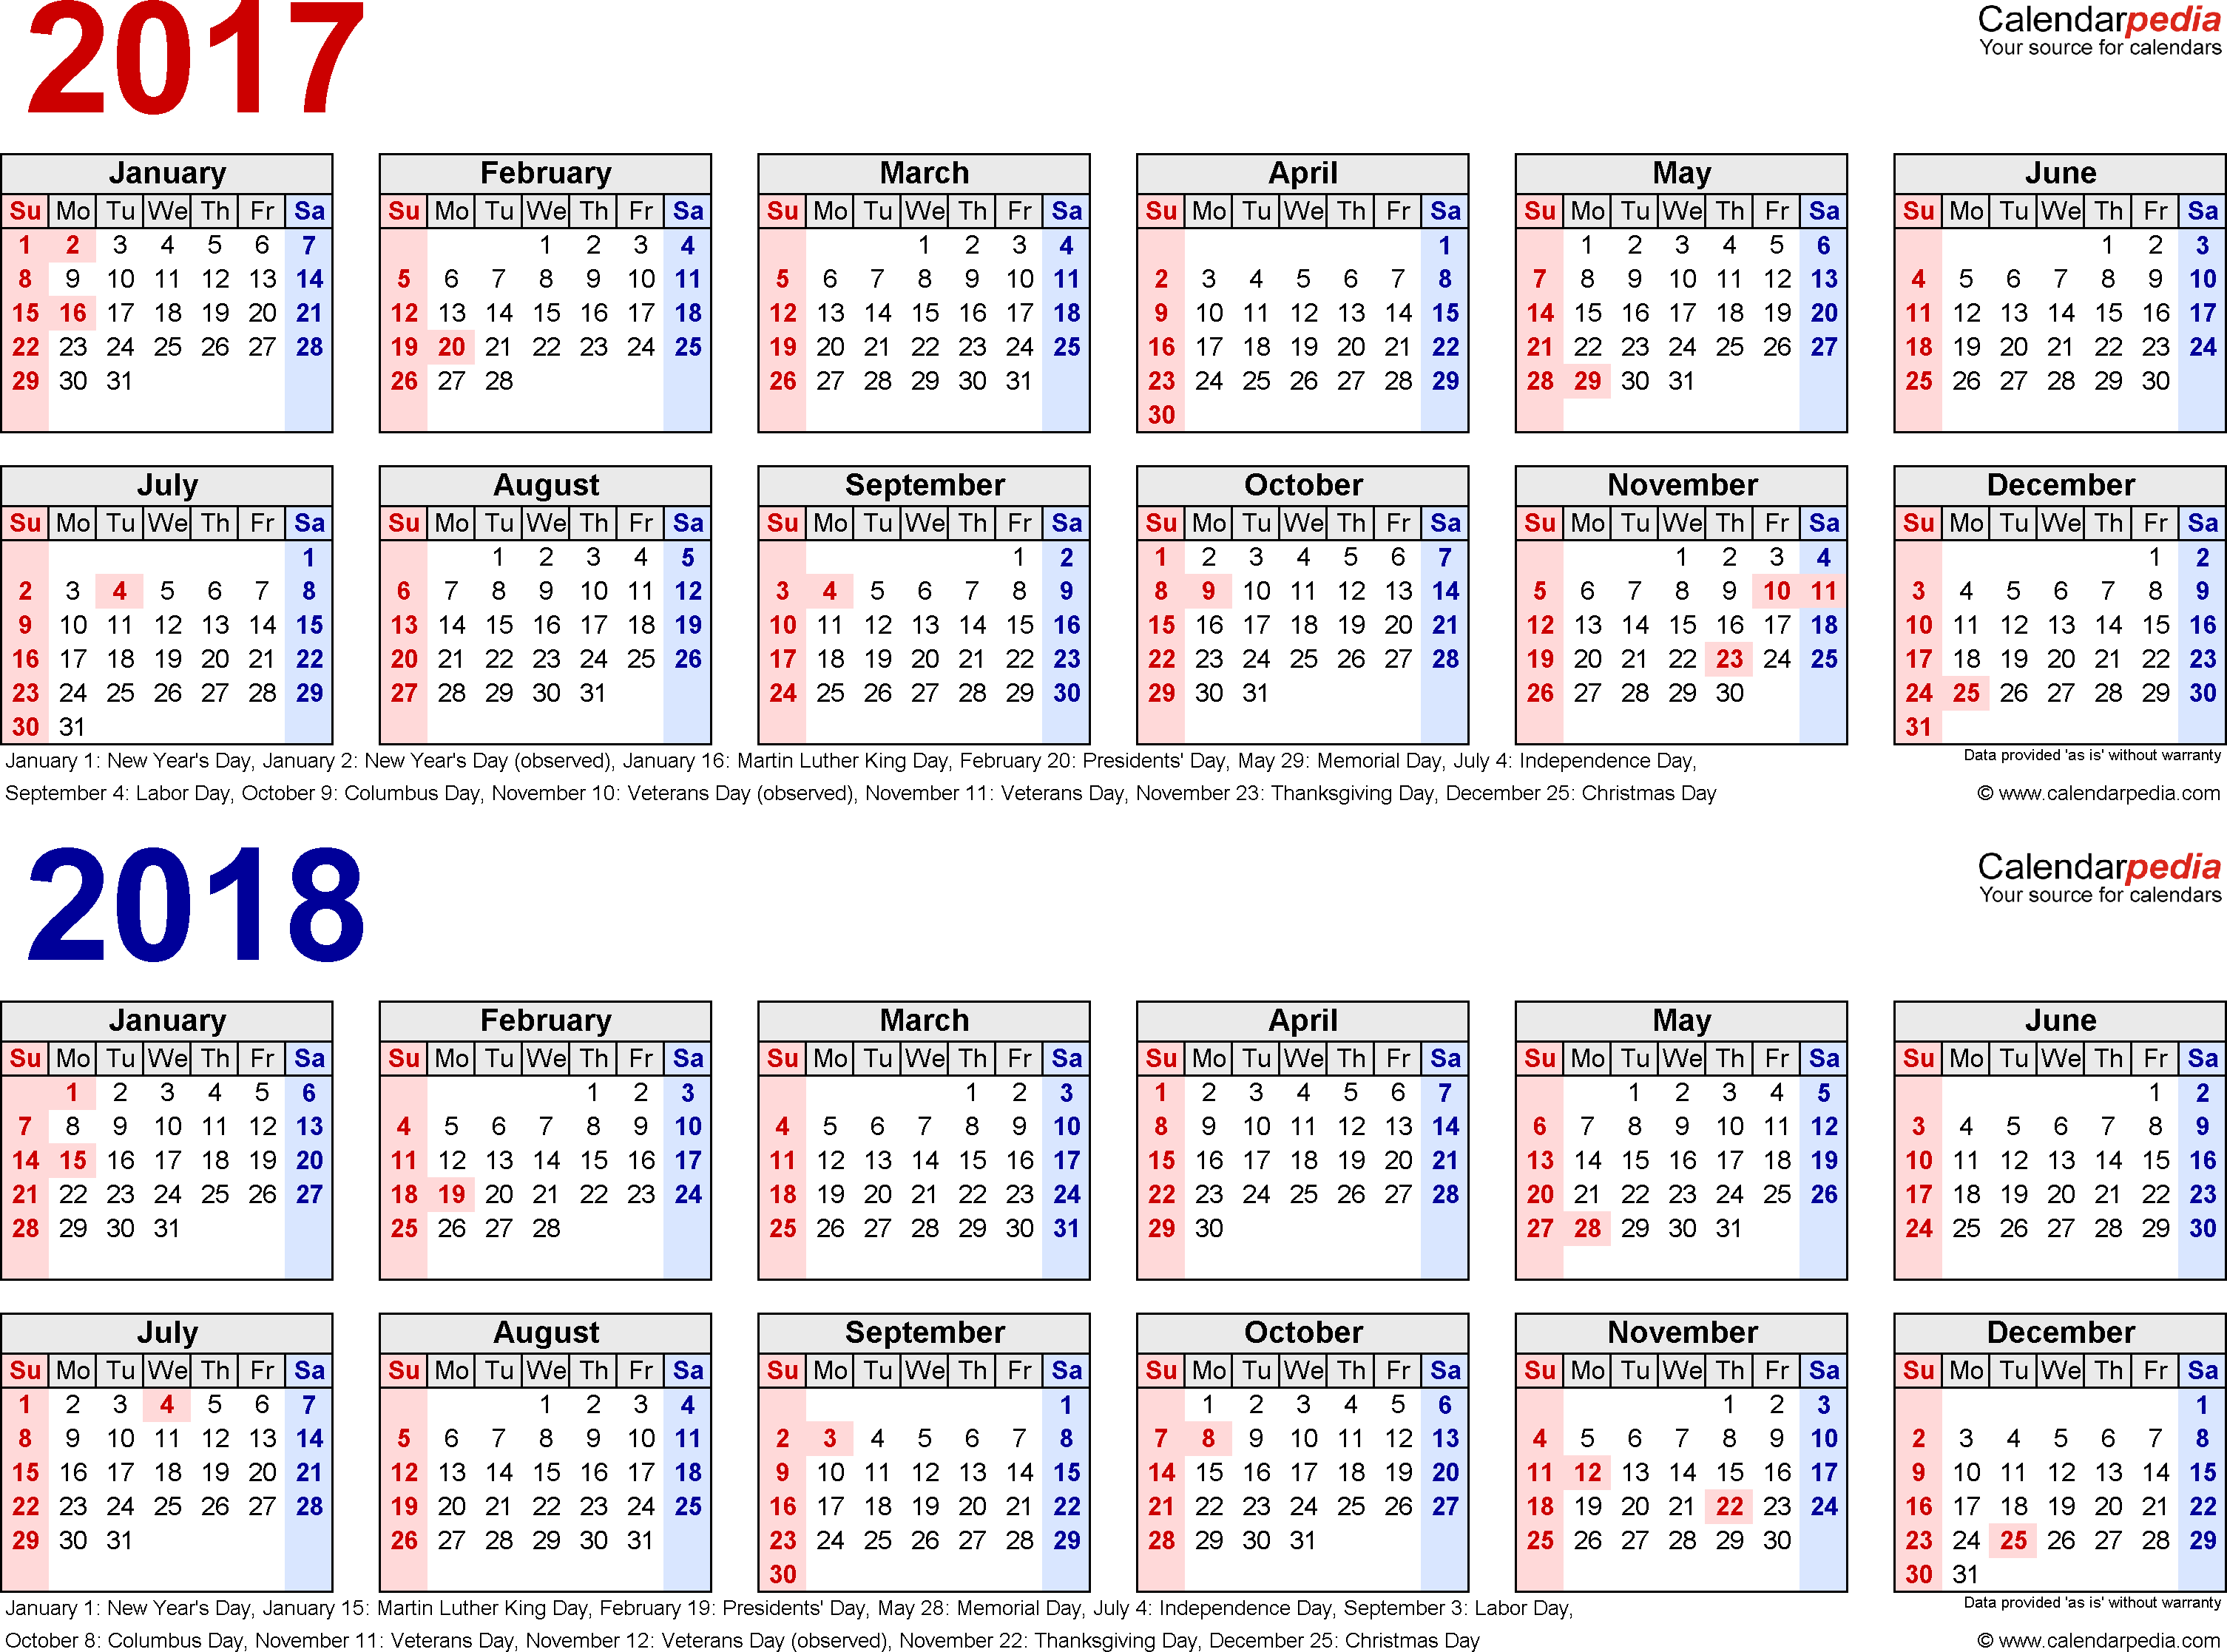 Template 1: Word template for two year calendar 2017/2018 (landscape orientation, 1 page, in red and blue)